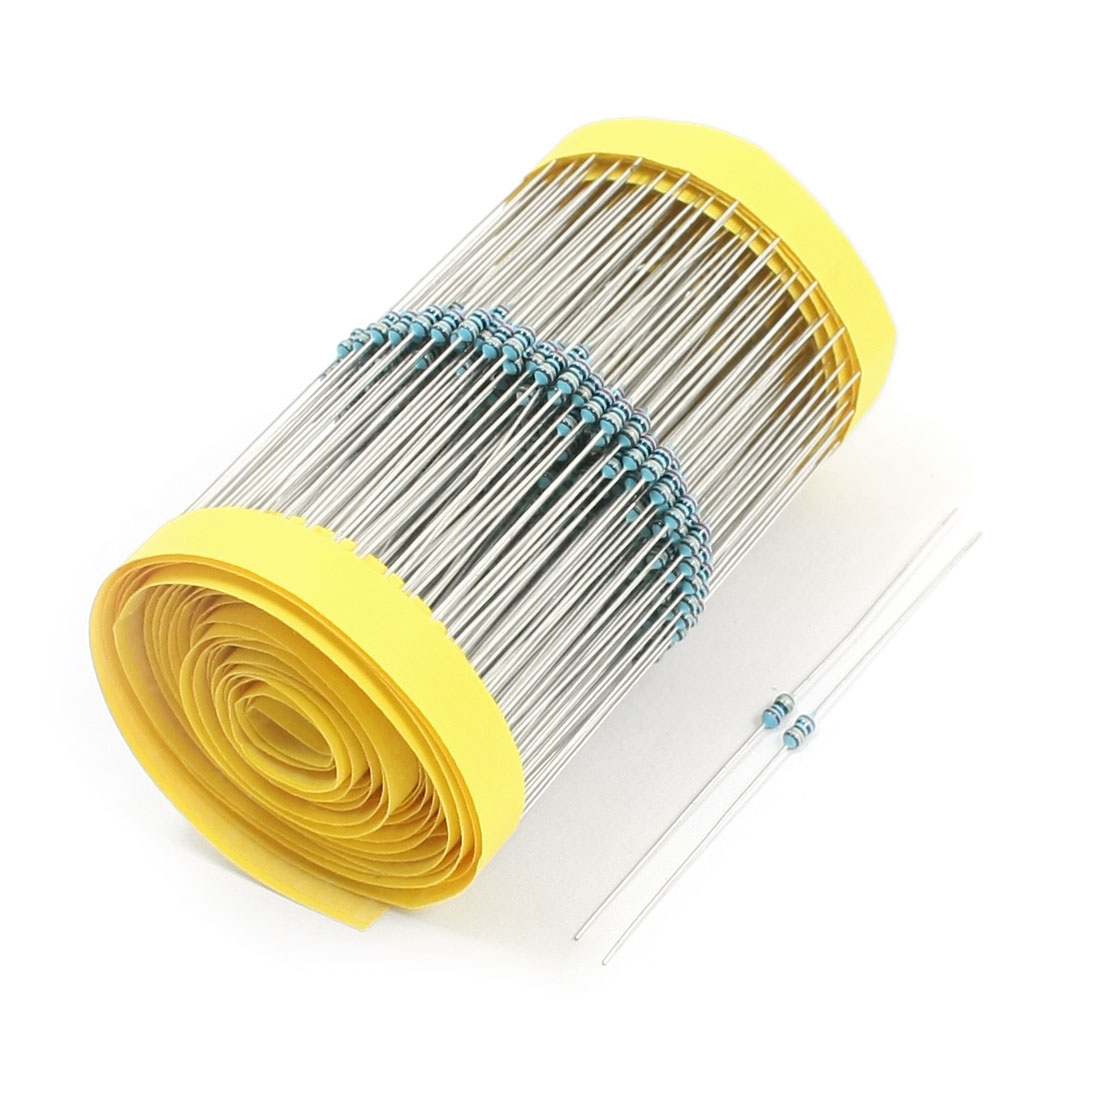 Electronic Component Axial Metal Film Resistor 20 Ohm 1/8W 1% 600 Pcs